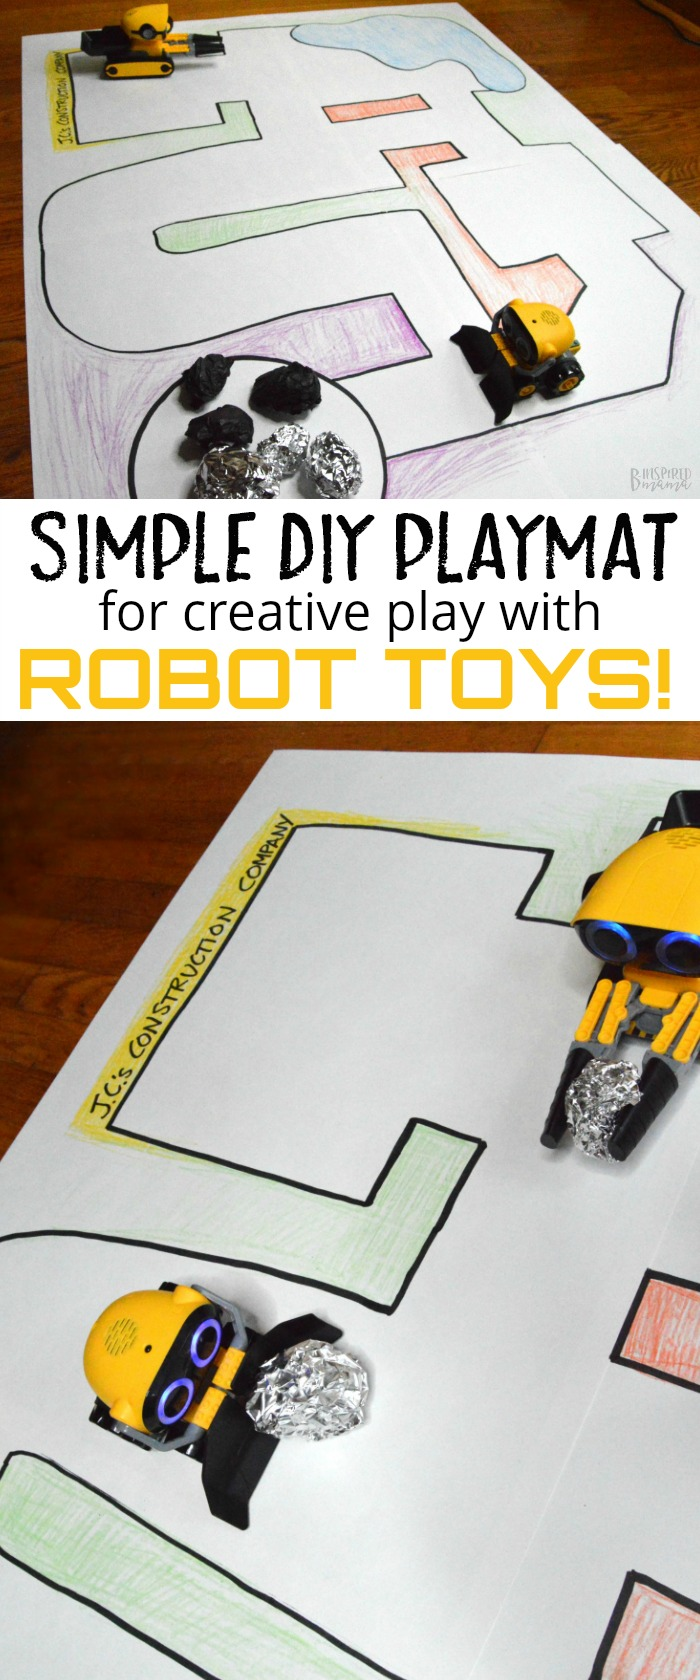 This seriously SIMPLE playmat for kids robot toys is a super clever way to sneak in some hands-on STEM and STEAM play and learning!  data-recalc-dims=